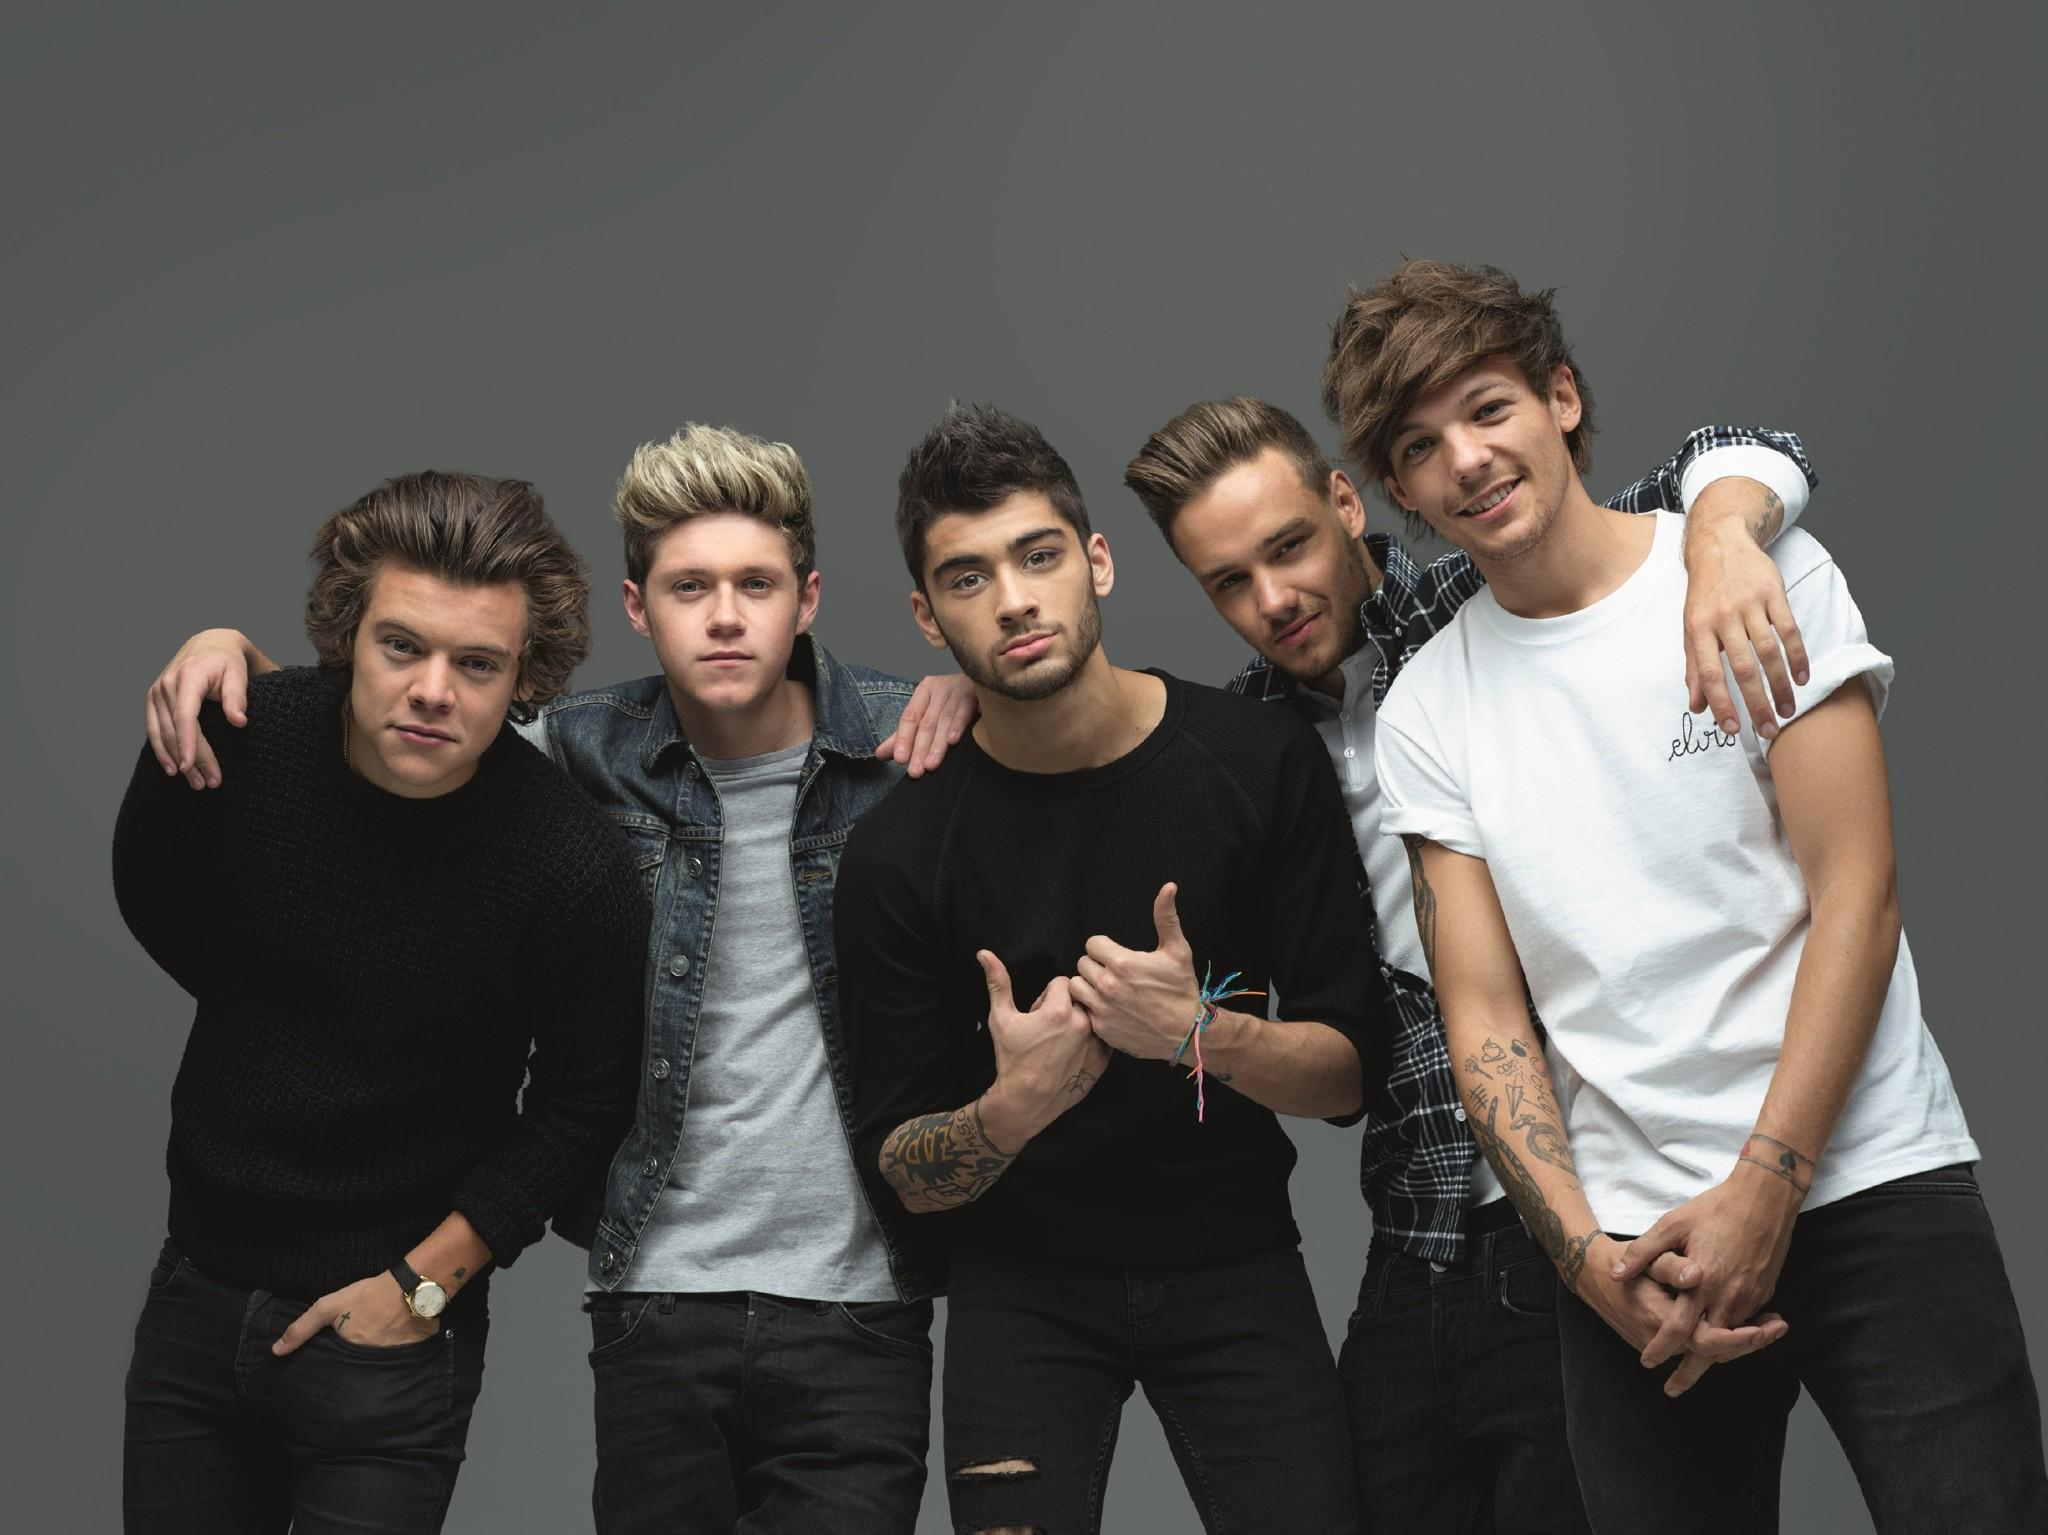 One Direction, US5 und O-Town